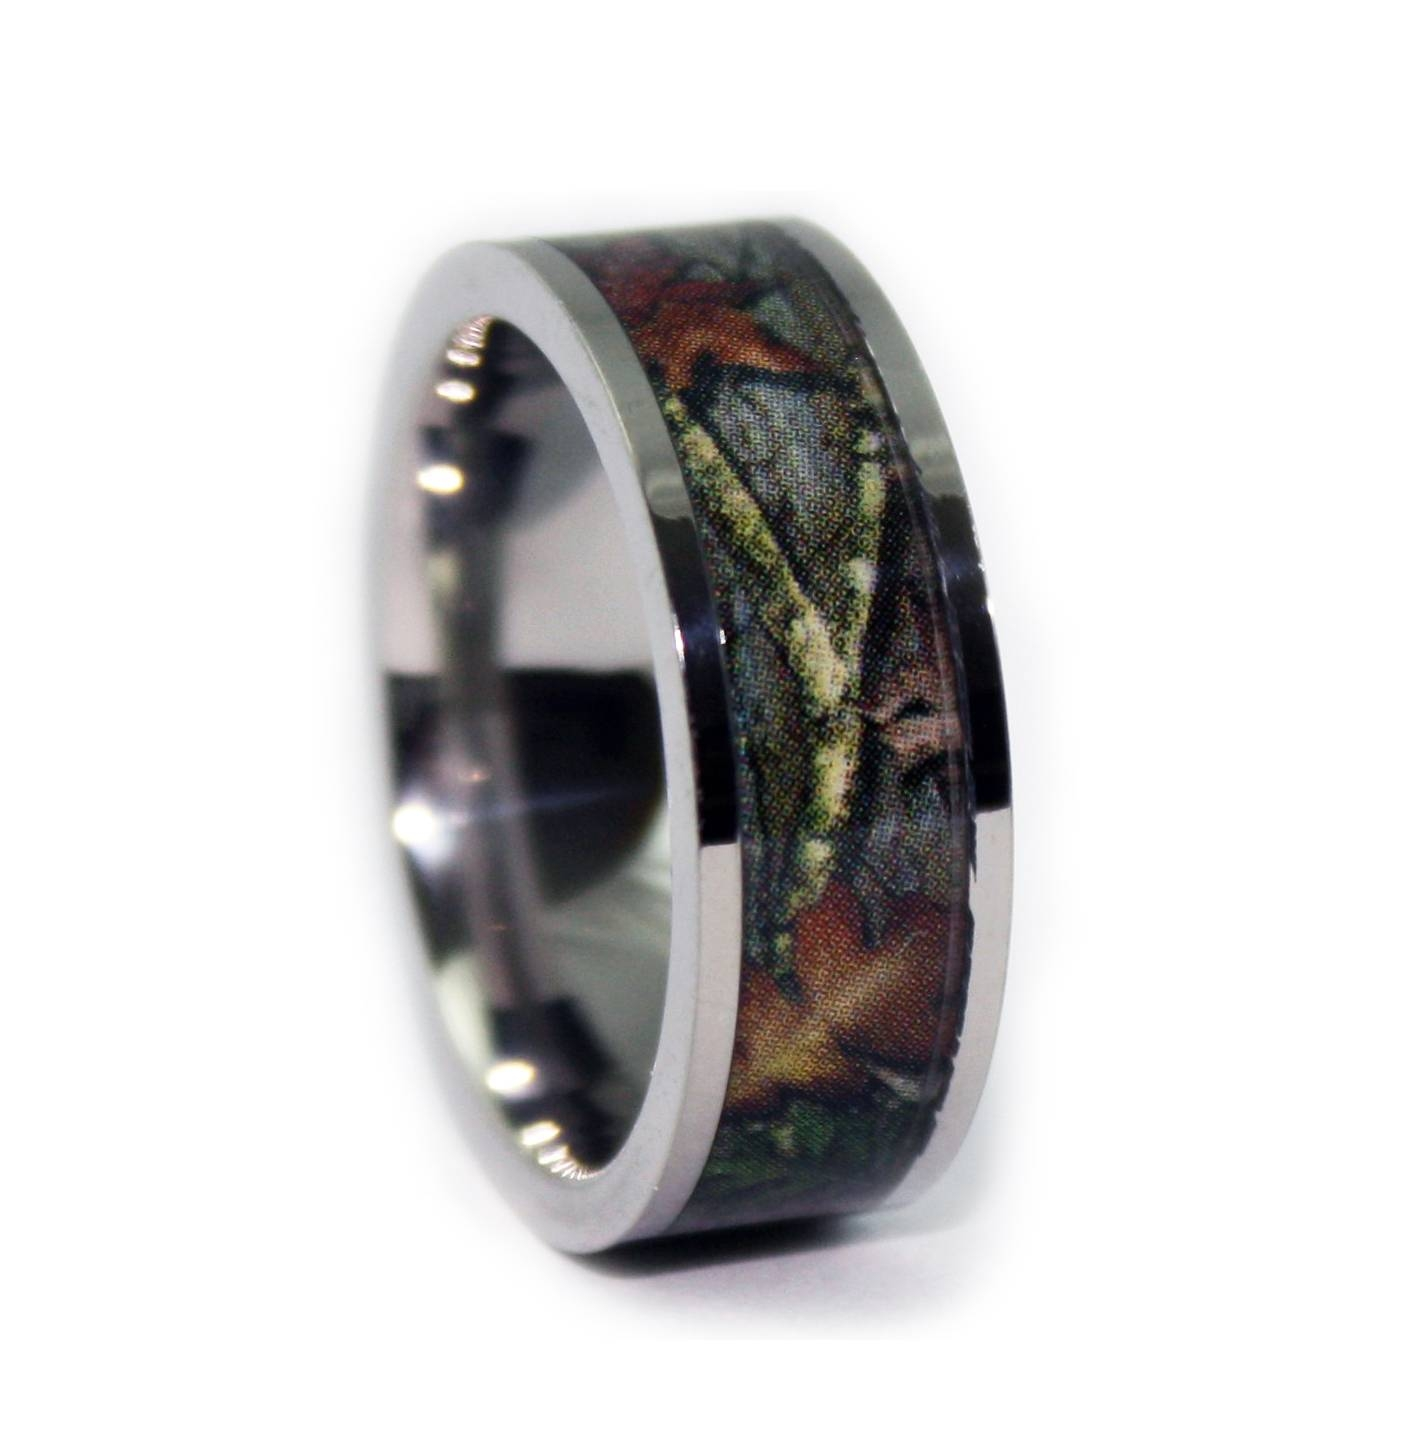 51 camo wedding band sets camo wedding ring set for him and her within country - Camo Wedding Ring Sets For Him And Her